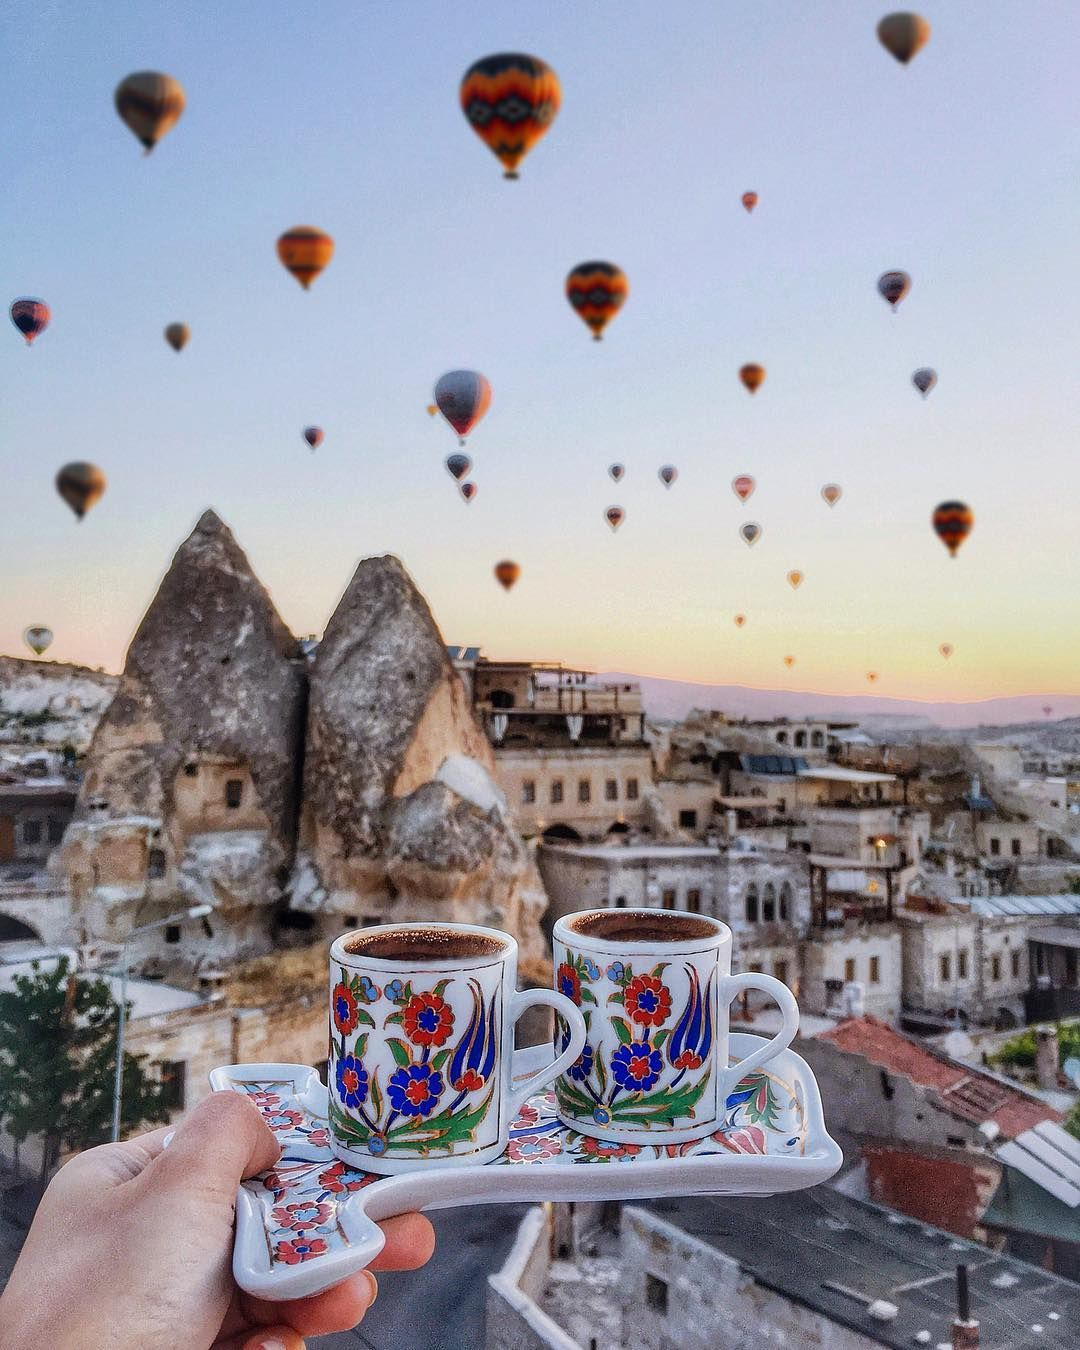 5 628 Begenme 141 Yorum Instagram Da Viktoriya Sener Tiebowtie Everyday Magic At Cappadocia Starts Wi Turkey Vacation Beautiful Places To Travel Travel